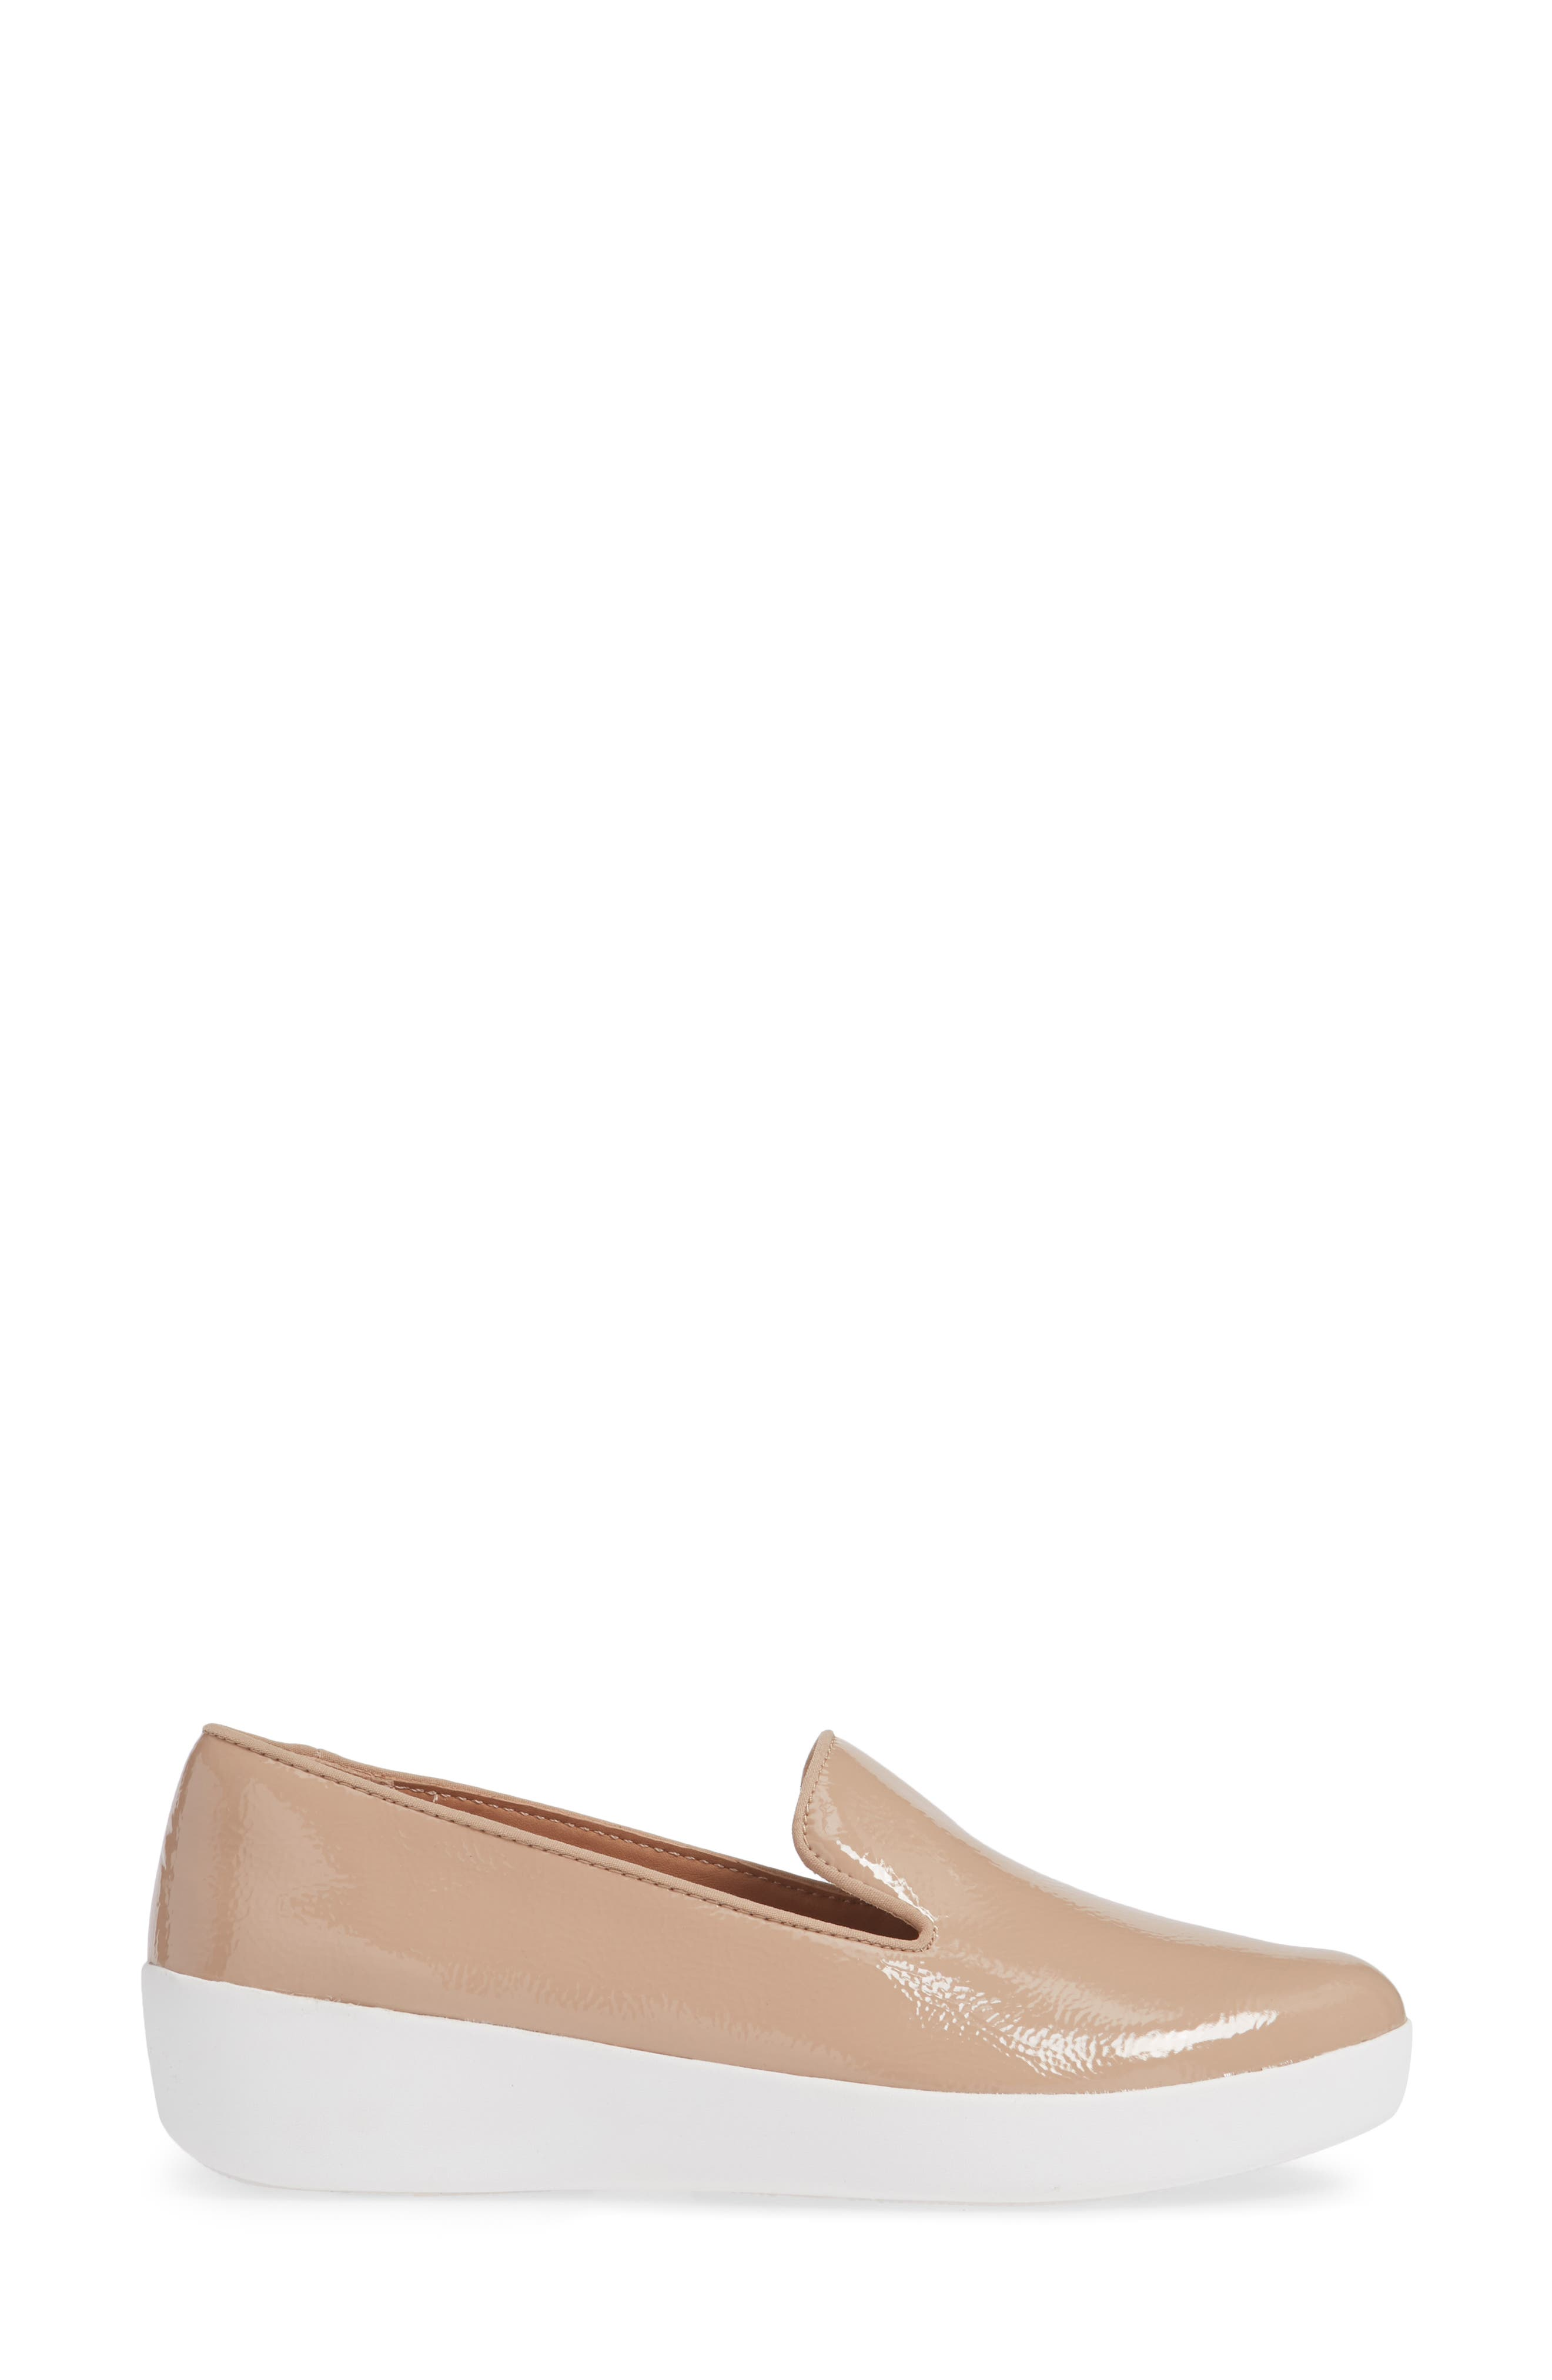 Audrey Smoking Slipper,                             Alternate thumbnail 3, color,                             TAUPE PATENT LEATHER